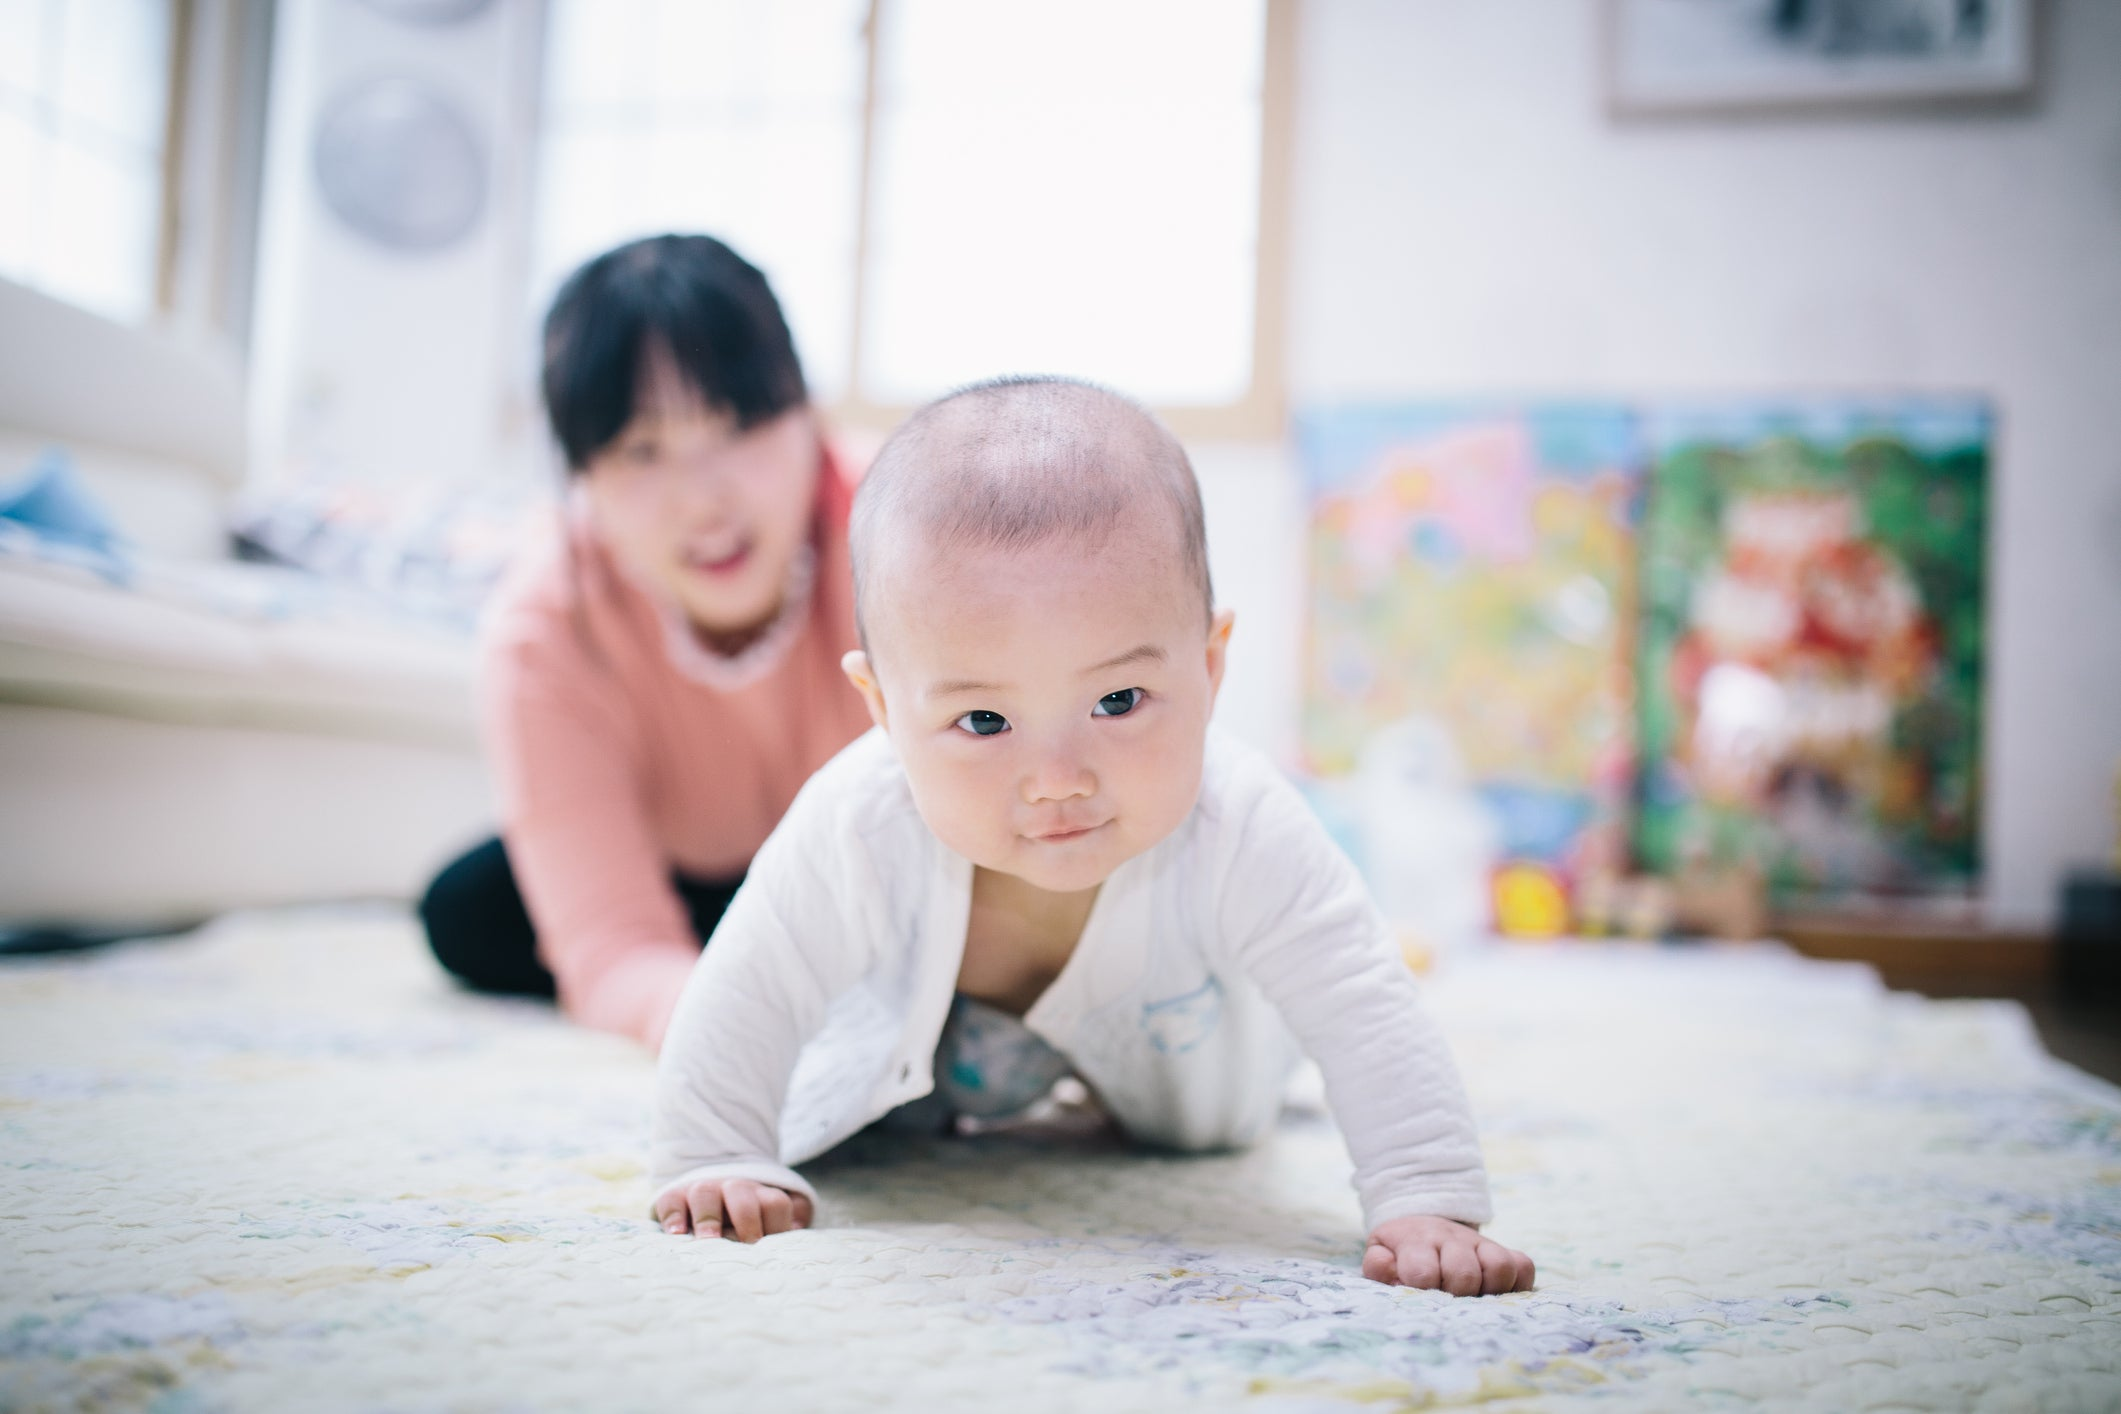 7 Spots You May Have Missed While Baby-Proofing